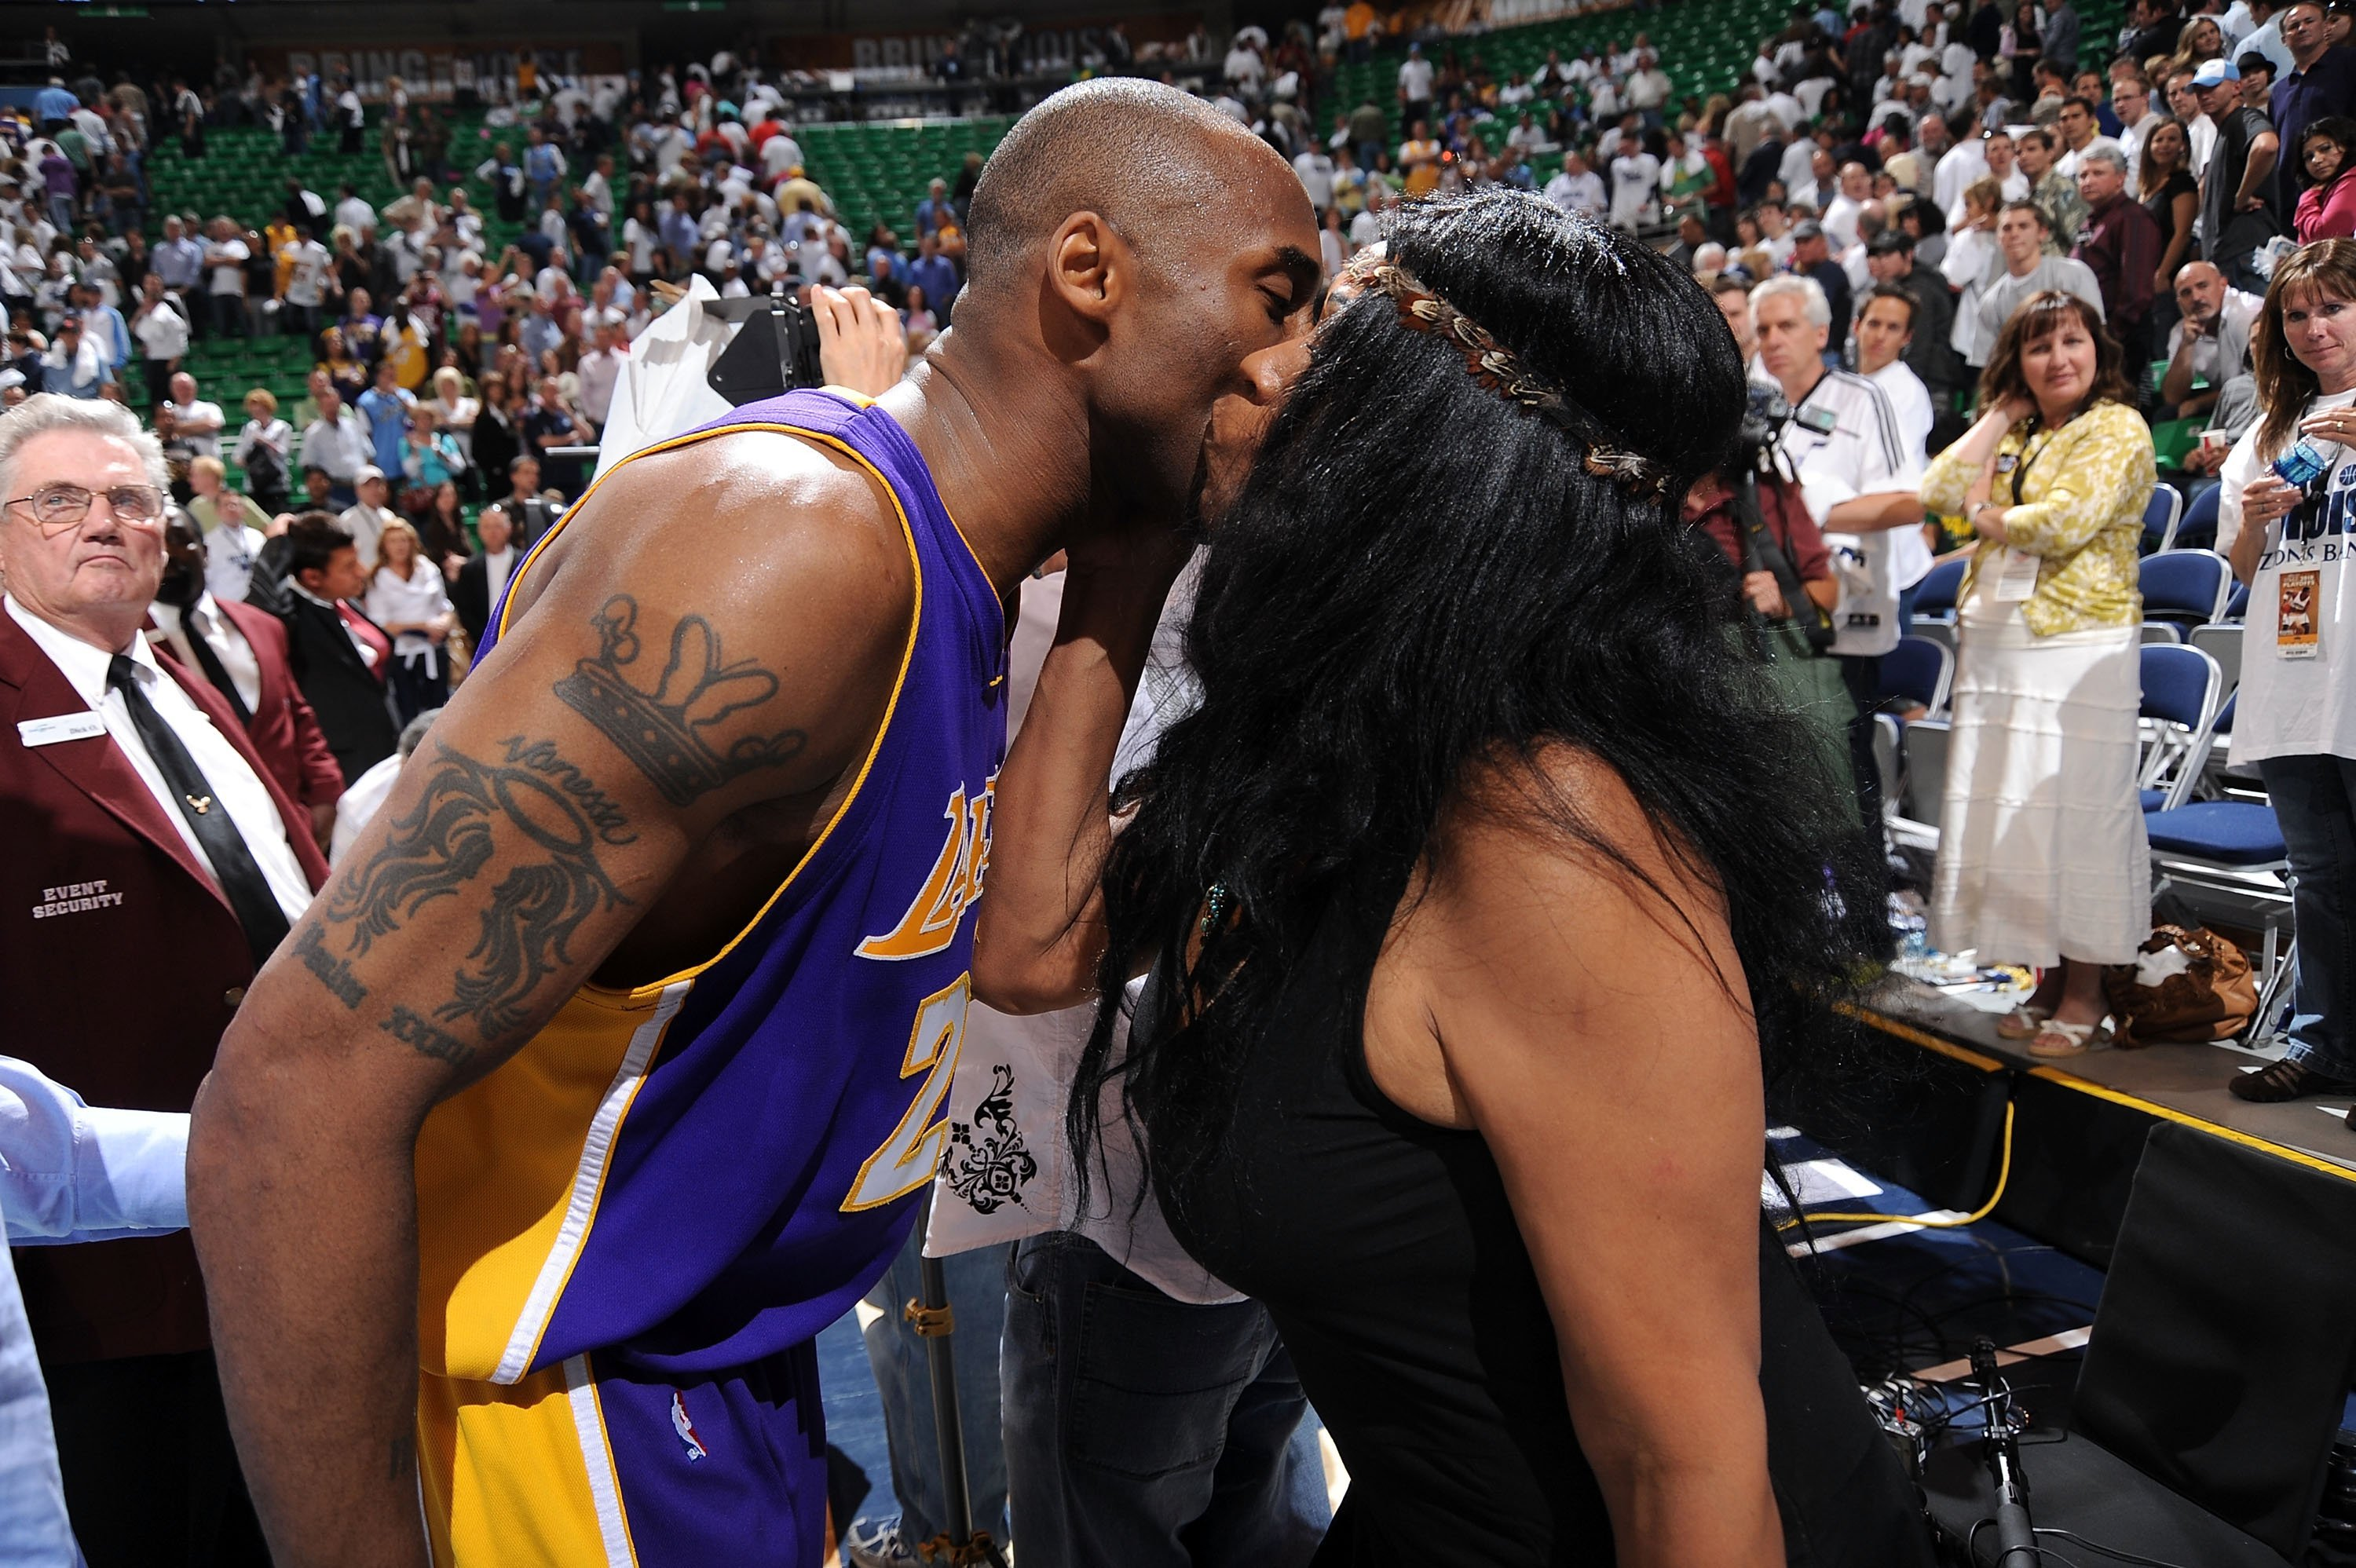 Kobe Bryant #24 of the Los Angeles Lakers kisses his mom Pam Bryant after their win against the Utah Jazz on May 8, 2010 in Utah | Photo: Getty Images